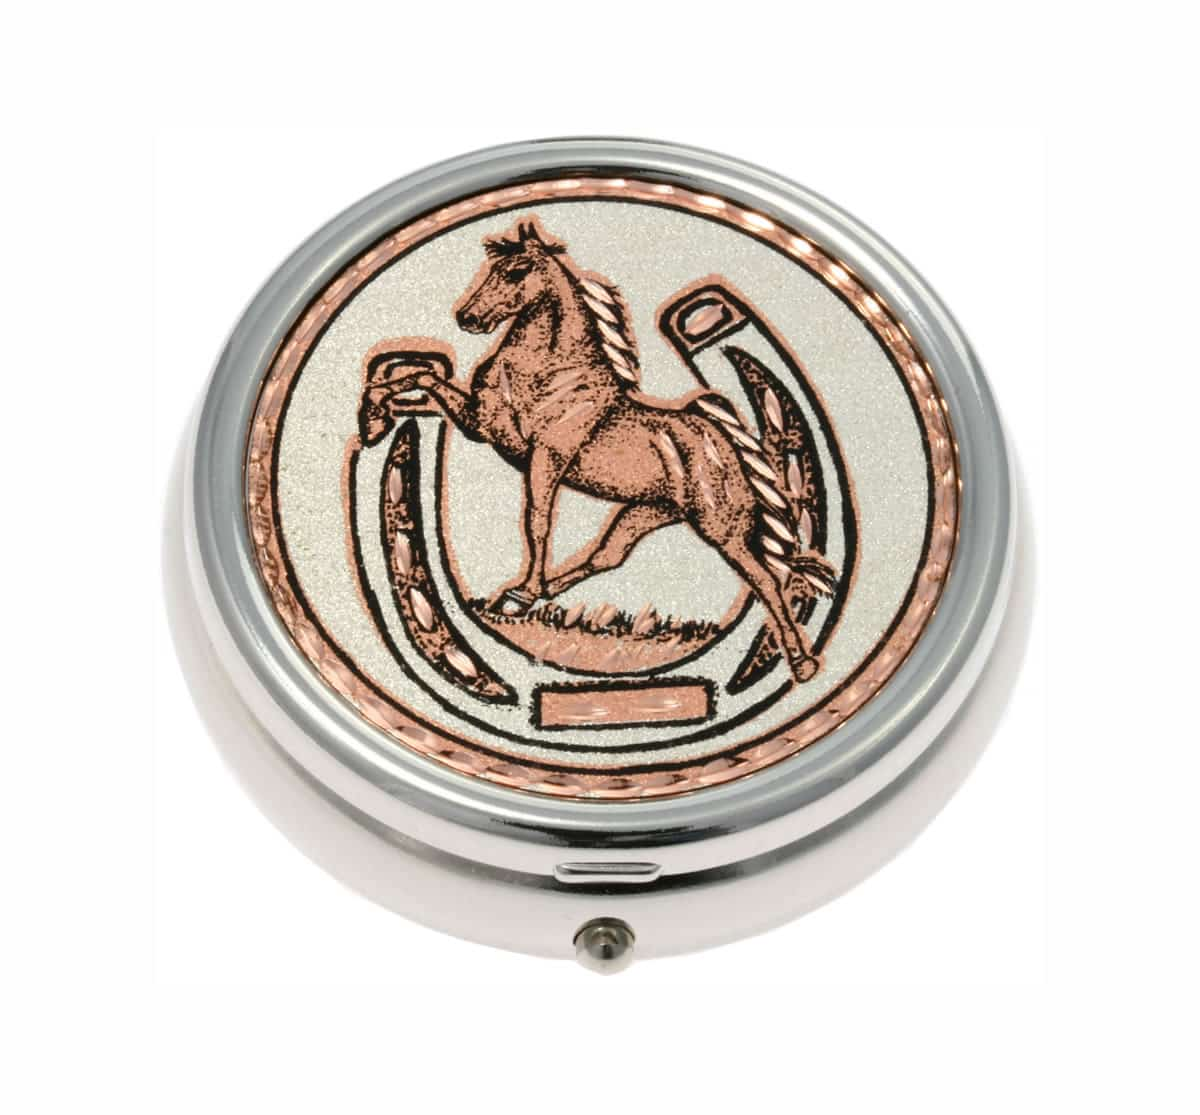 Buy Stylish Prancing Horse and Horseshoe Pill Boxes, Unique Handmade Gifts for Women